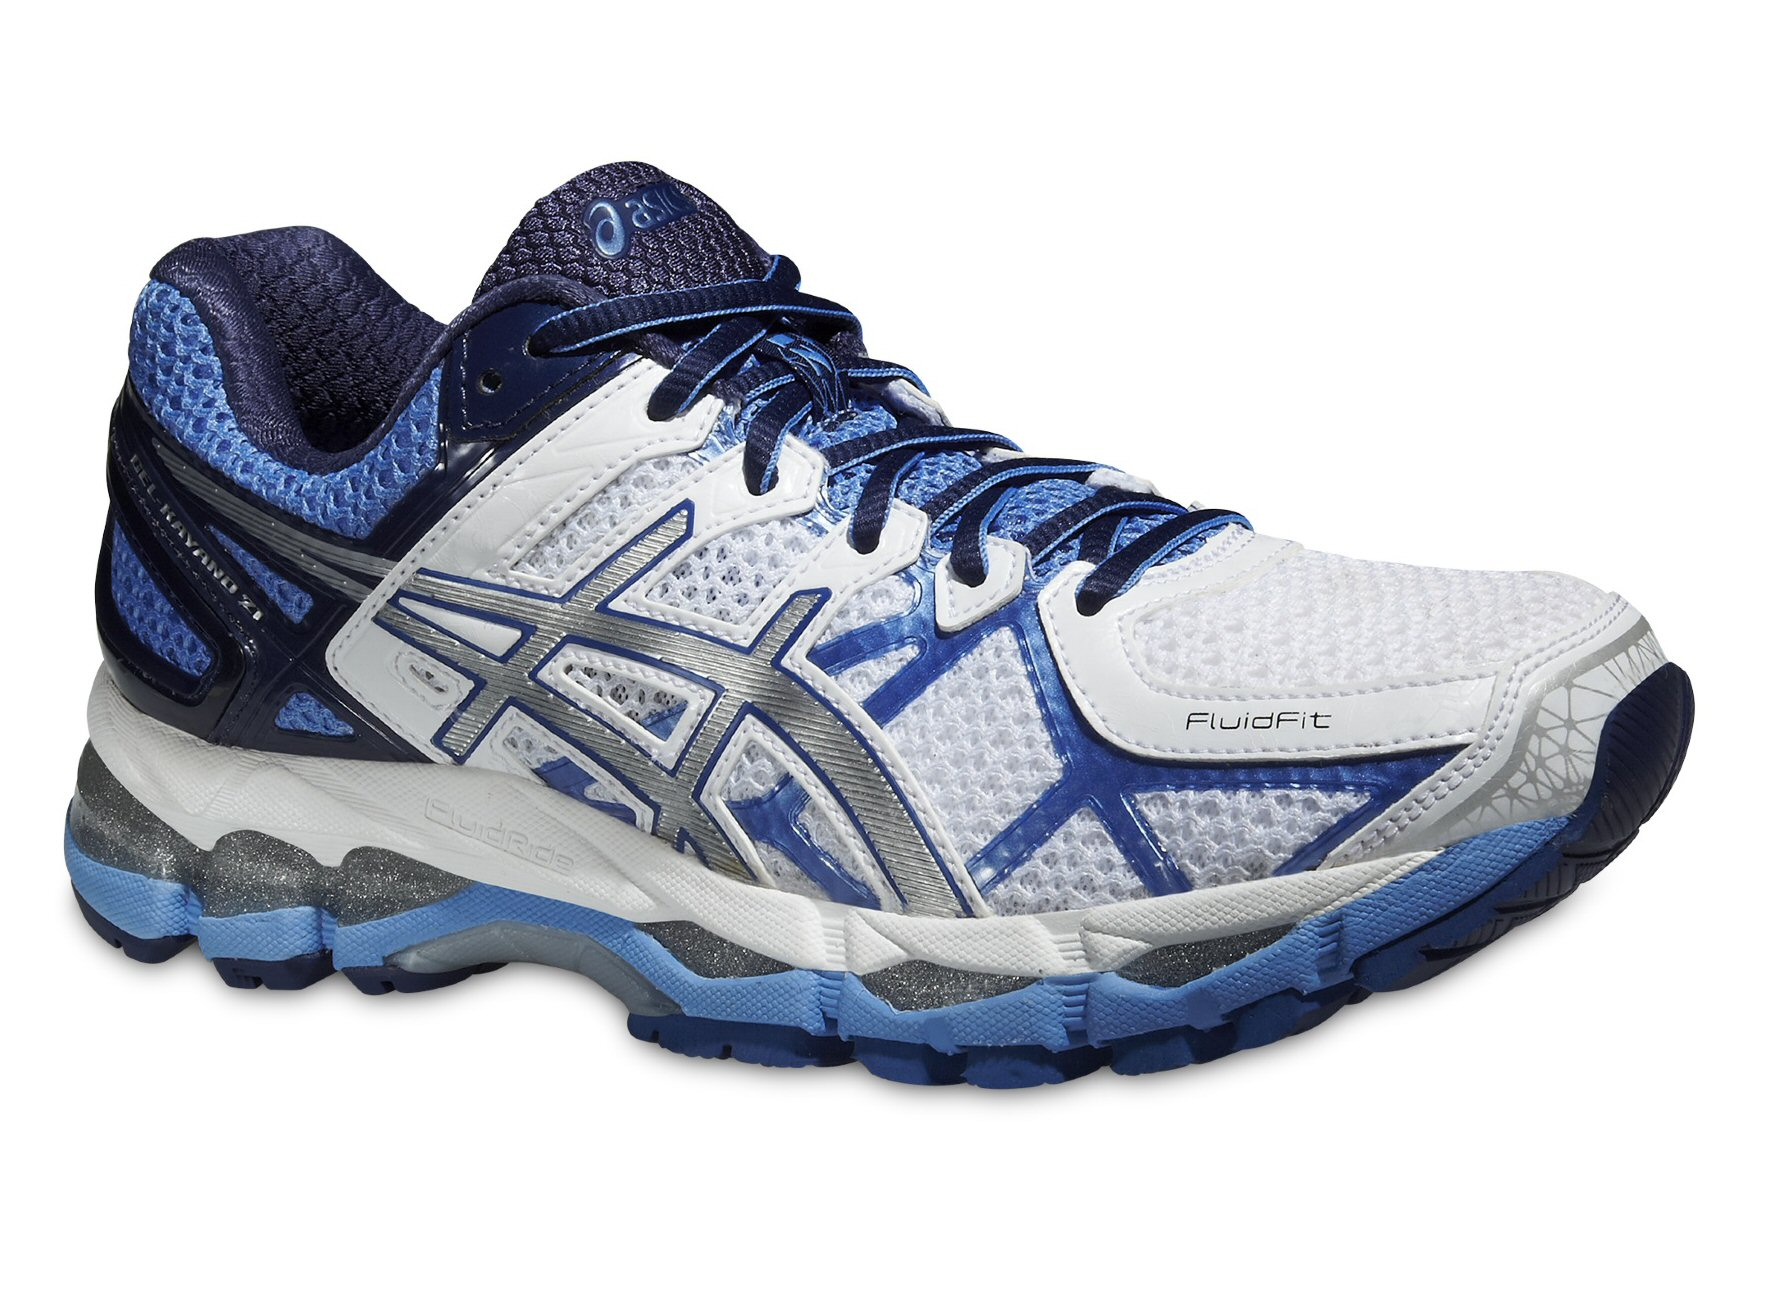 asics gel kayano 20 damen trkis folk fiddle tuition in suffolk. Black Bedroom Furniture Sets. Home Design Ideas